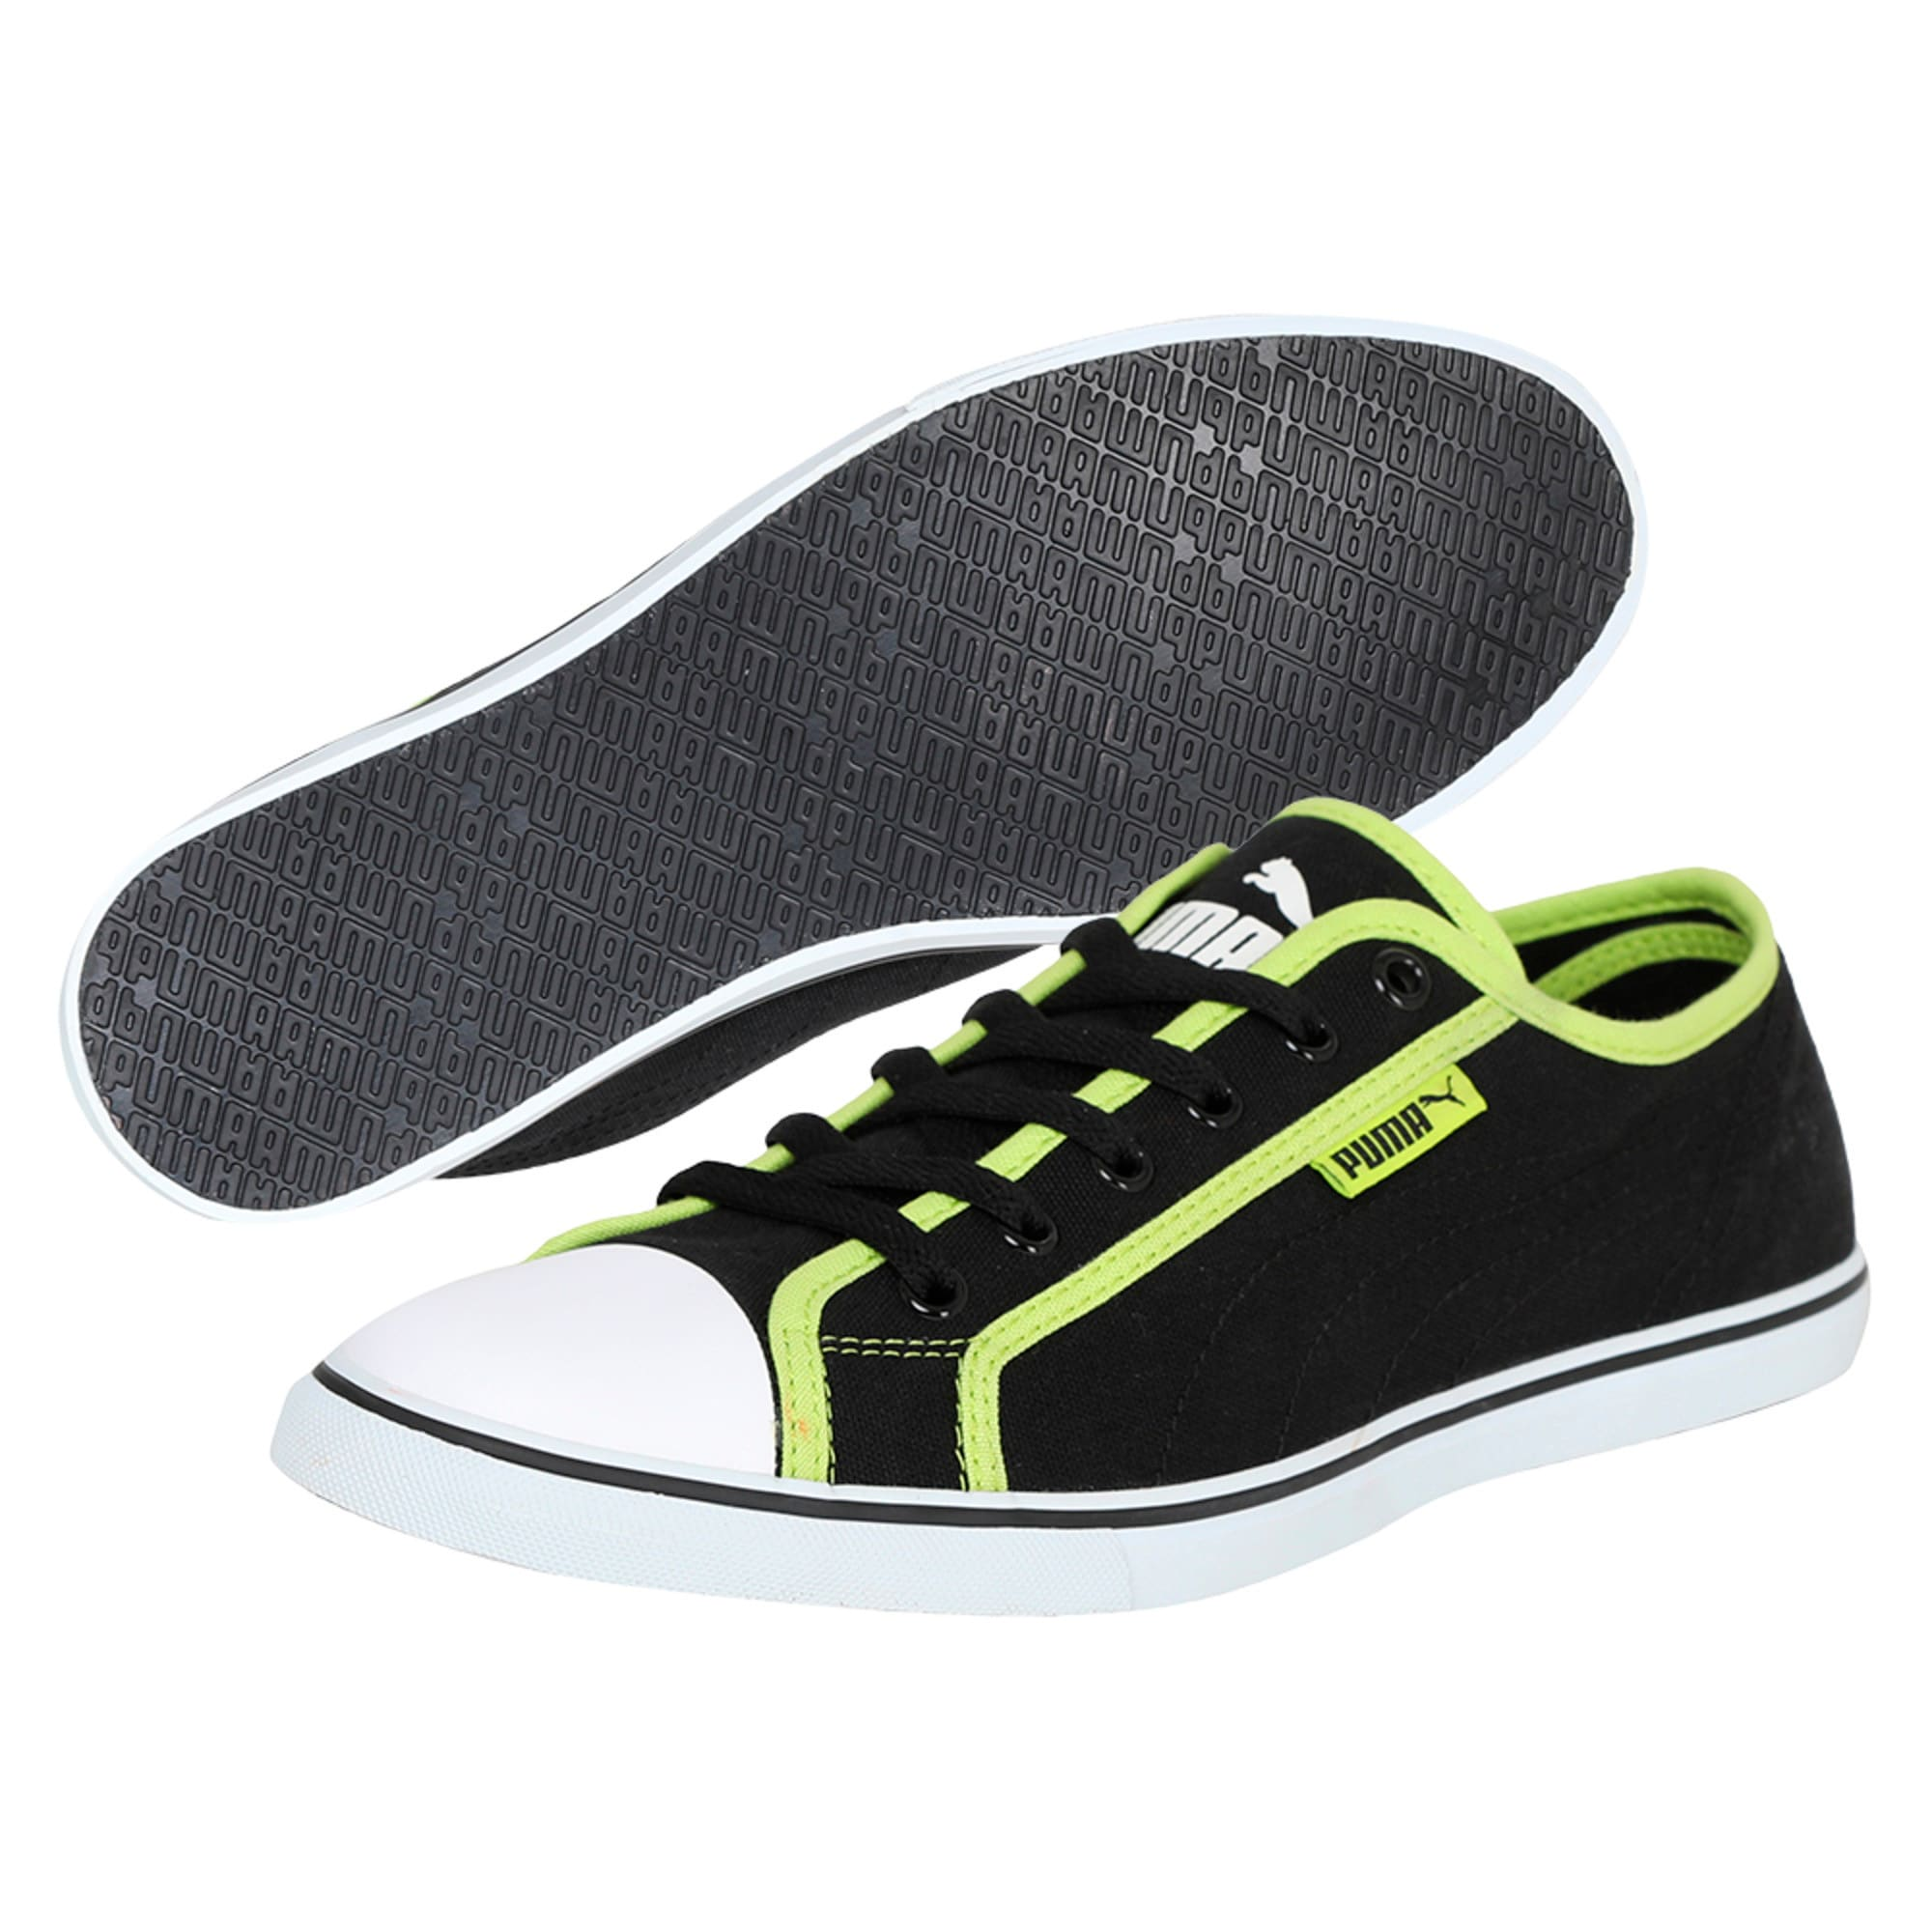 Thumbnail 2 of Puma Streetballer DP, Black-Puma White-Limepunch, medium-IND